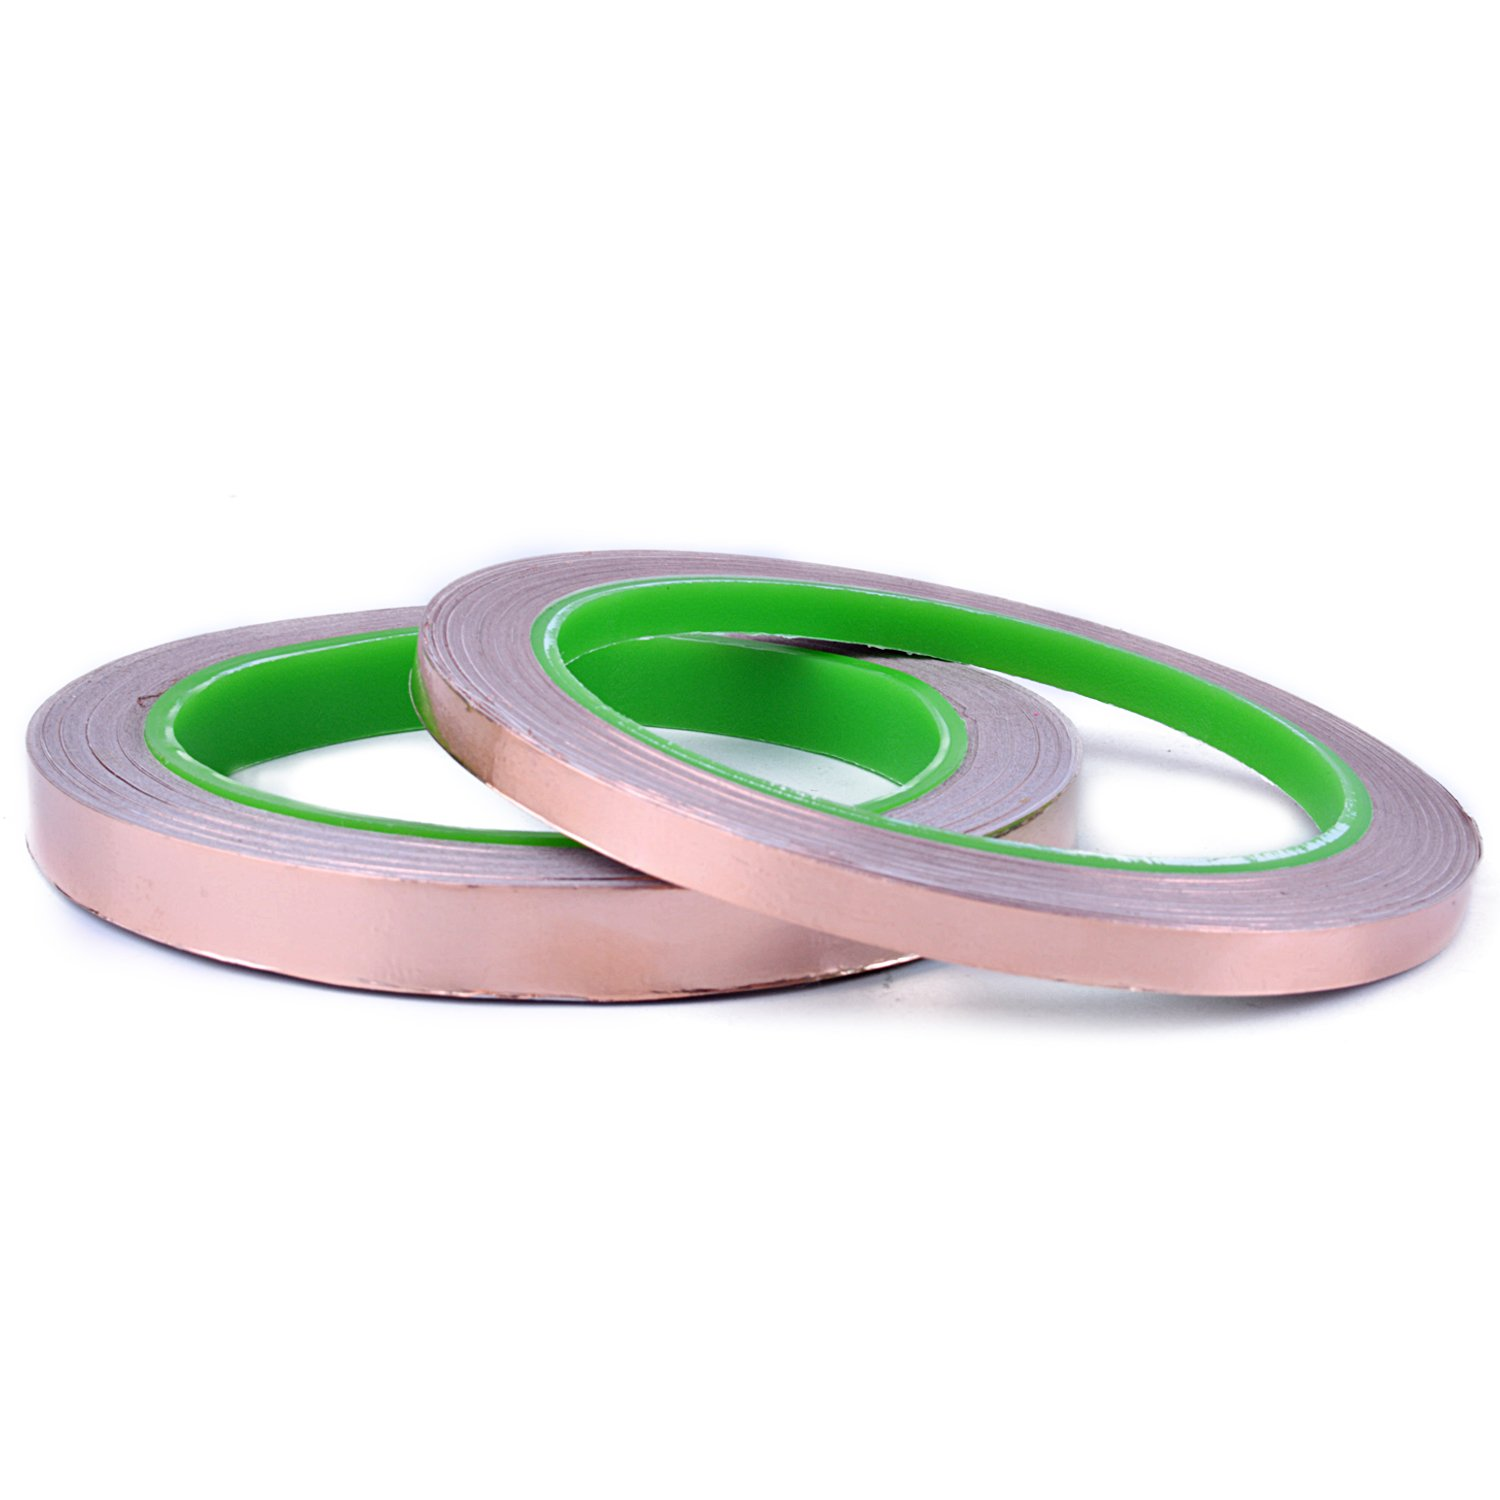 euhuton 2 Roll Dual Copper Foil Tape Conductive Adhesive for Paper Circuits,Electrical Repairs,Art Work,20m(6mm and 10mm)